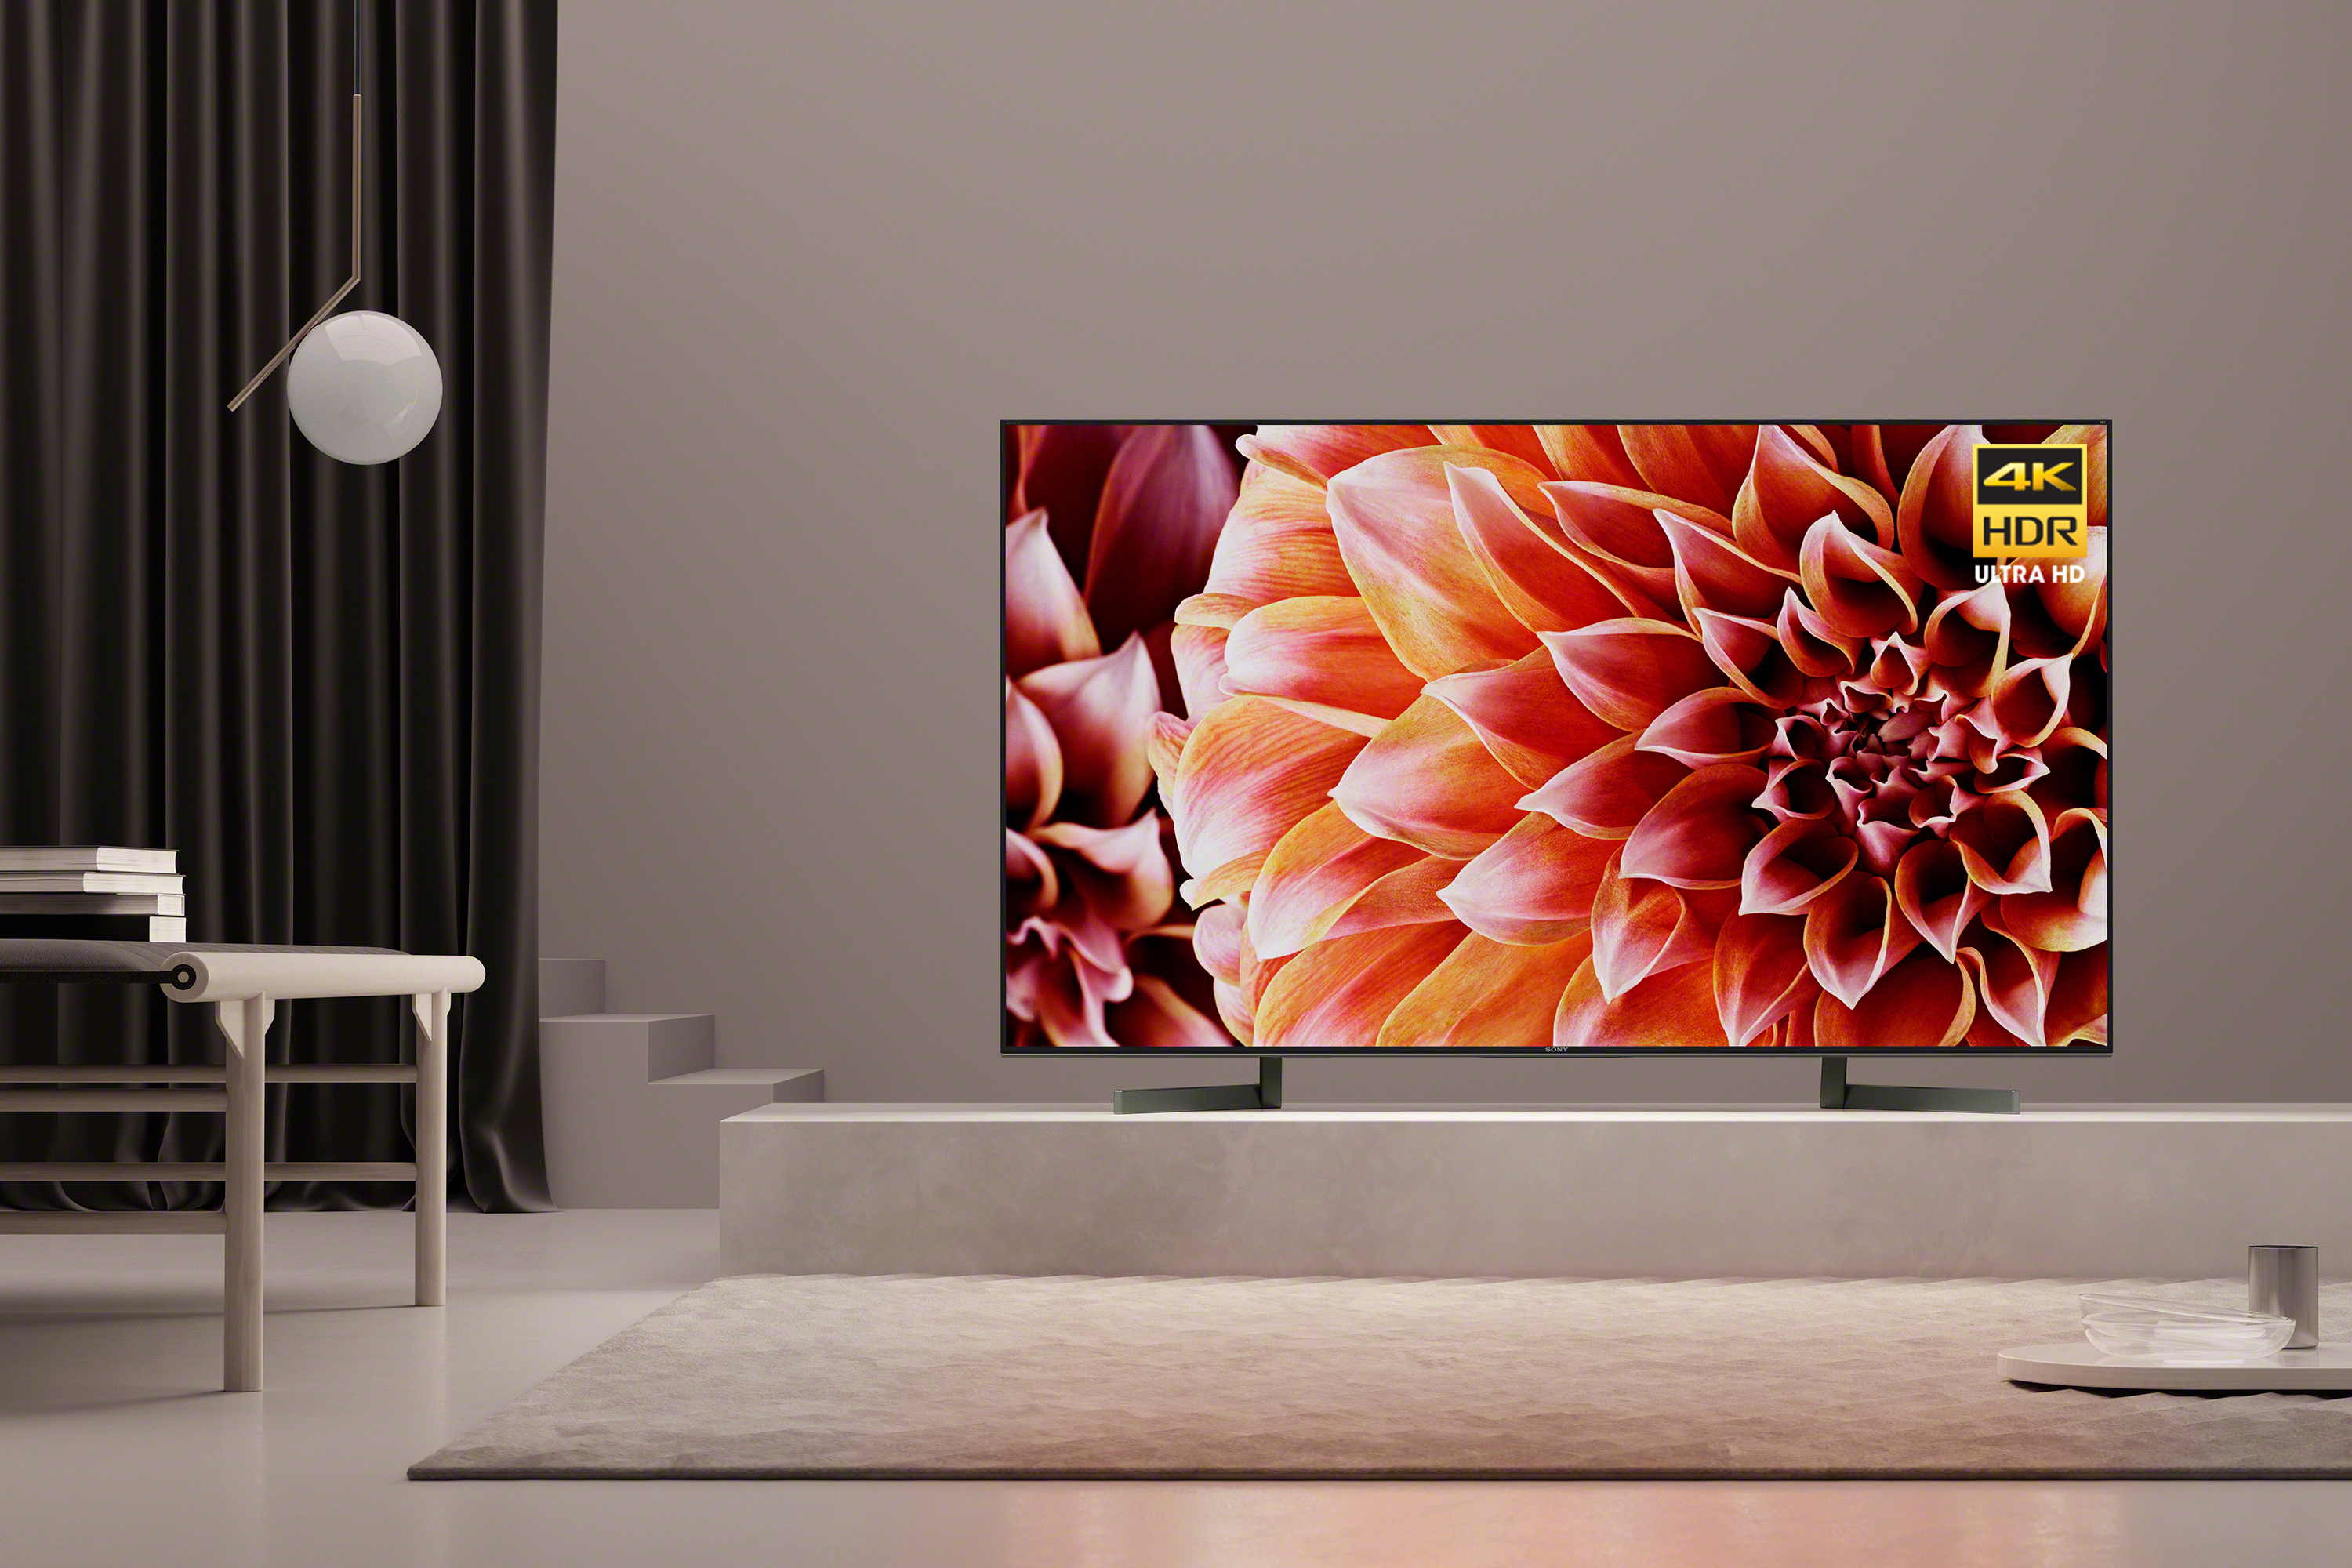 Sony X90F Series Direct Lit 4K Ultra HD TV